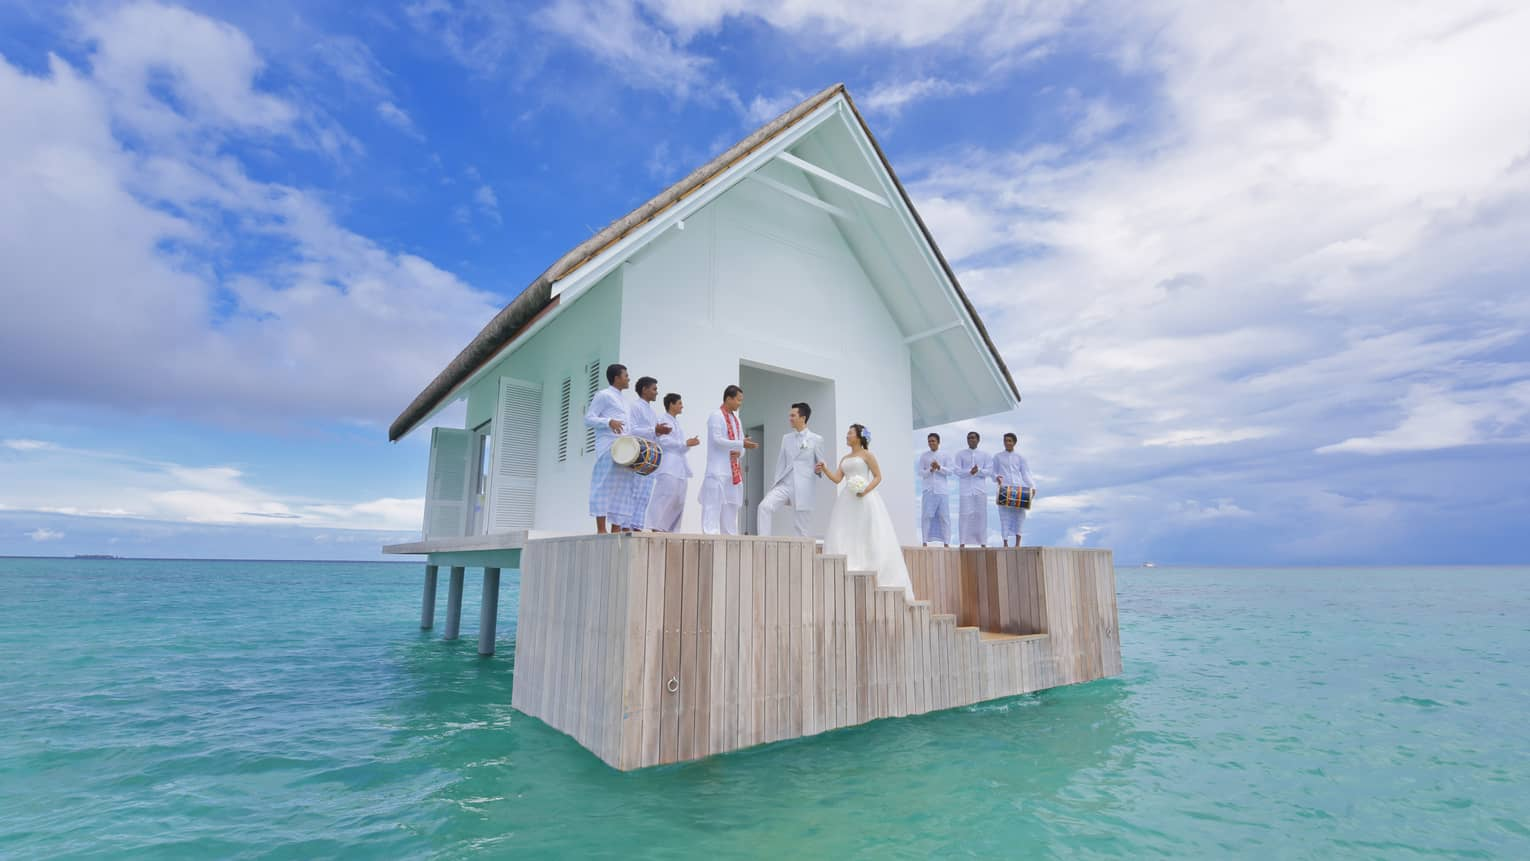 Wedding ceremony on steps of small white bungalow in middle of blue lagoon